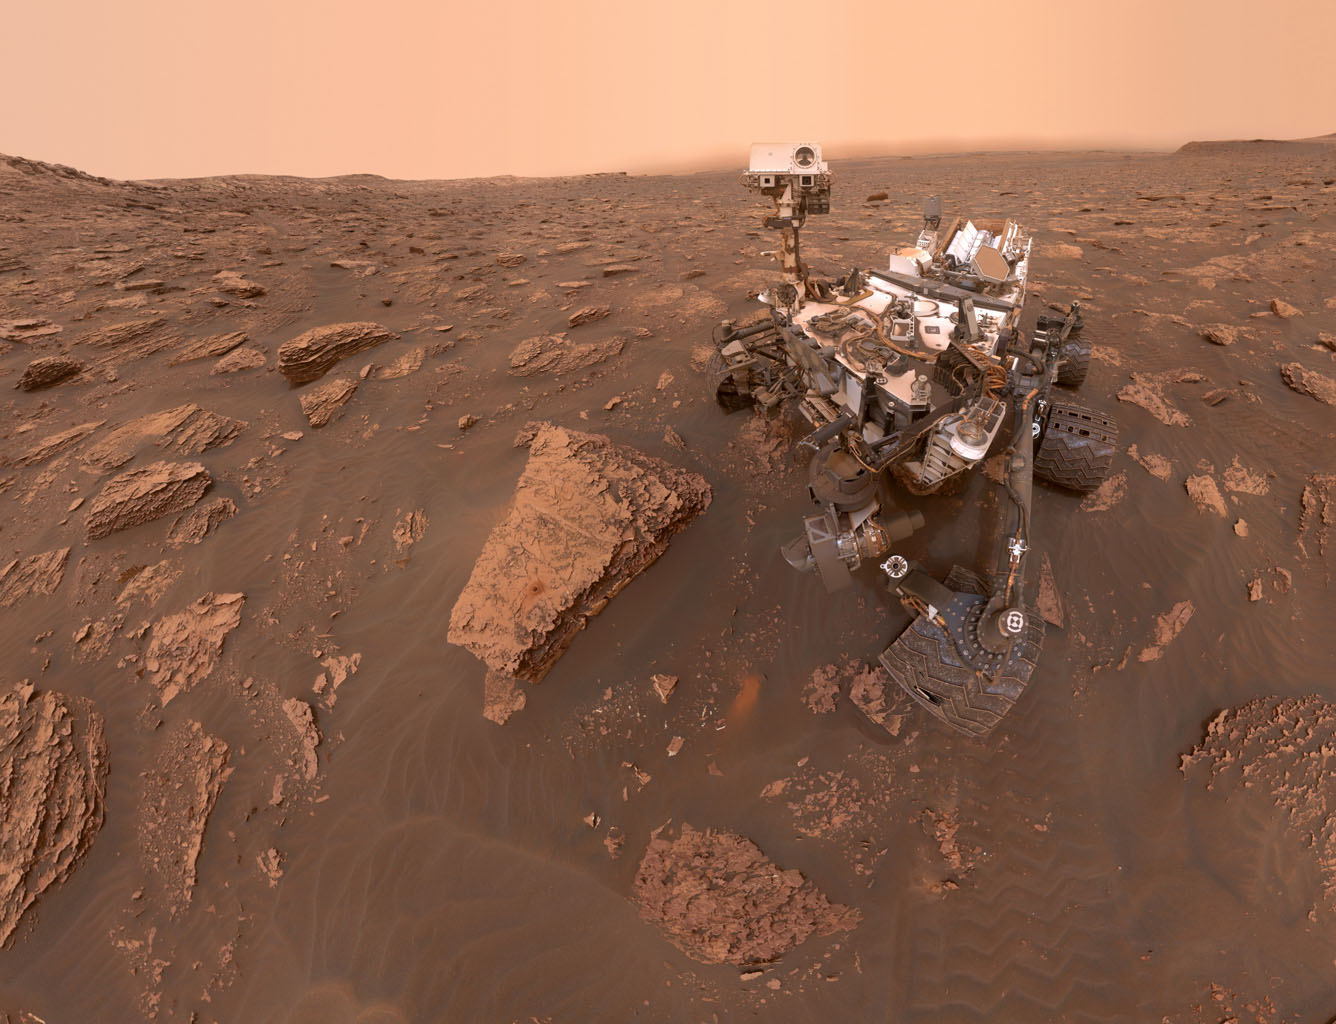 Space Images | Curiosity's Dusty Selfie